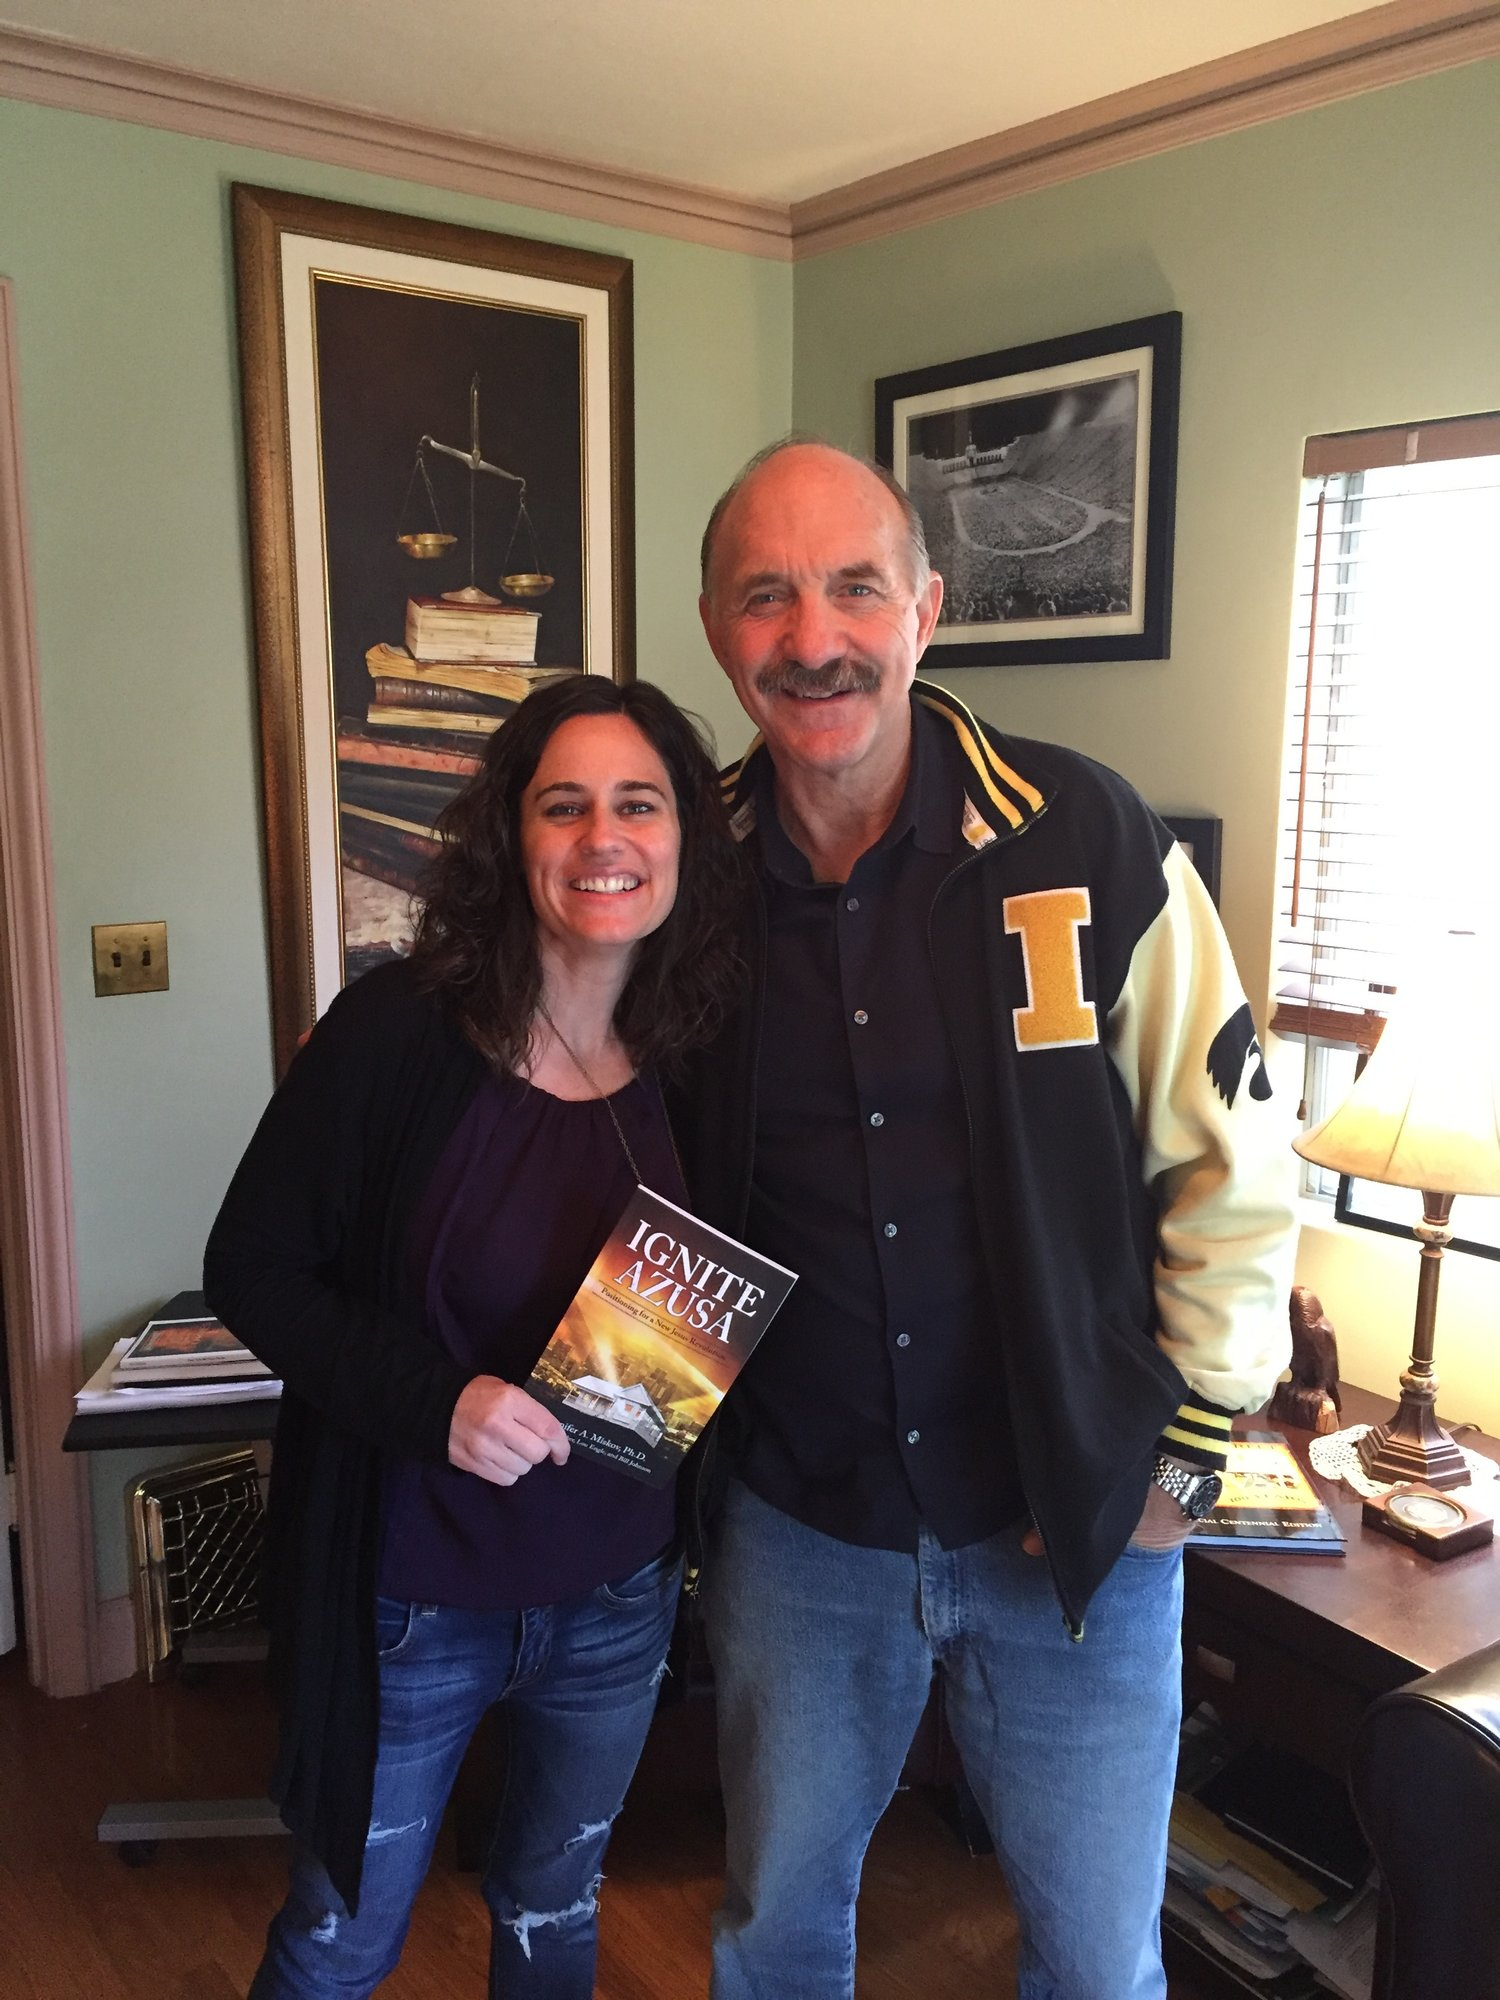 Transformation - Jennifer Miskov and I met in an old revival home in Oakland where Frank Bartleman, that great intercessor of Azusa, had prayed one hundred years before. I connected with a woman who carries a revivalist heart burning for the miraculous signs-and-wonders history of the great evangelist women of the past to be manifested today. This book will create faith and stir hunger for the deepest levels of union with God so that you and many others will walk in the kind of miracles that must be demonstrated today in our world. Read it and be transformed.